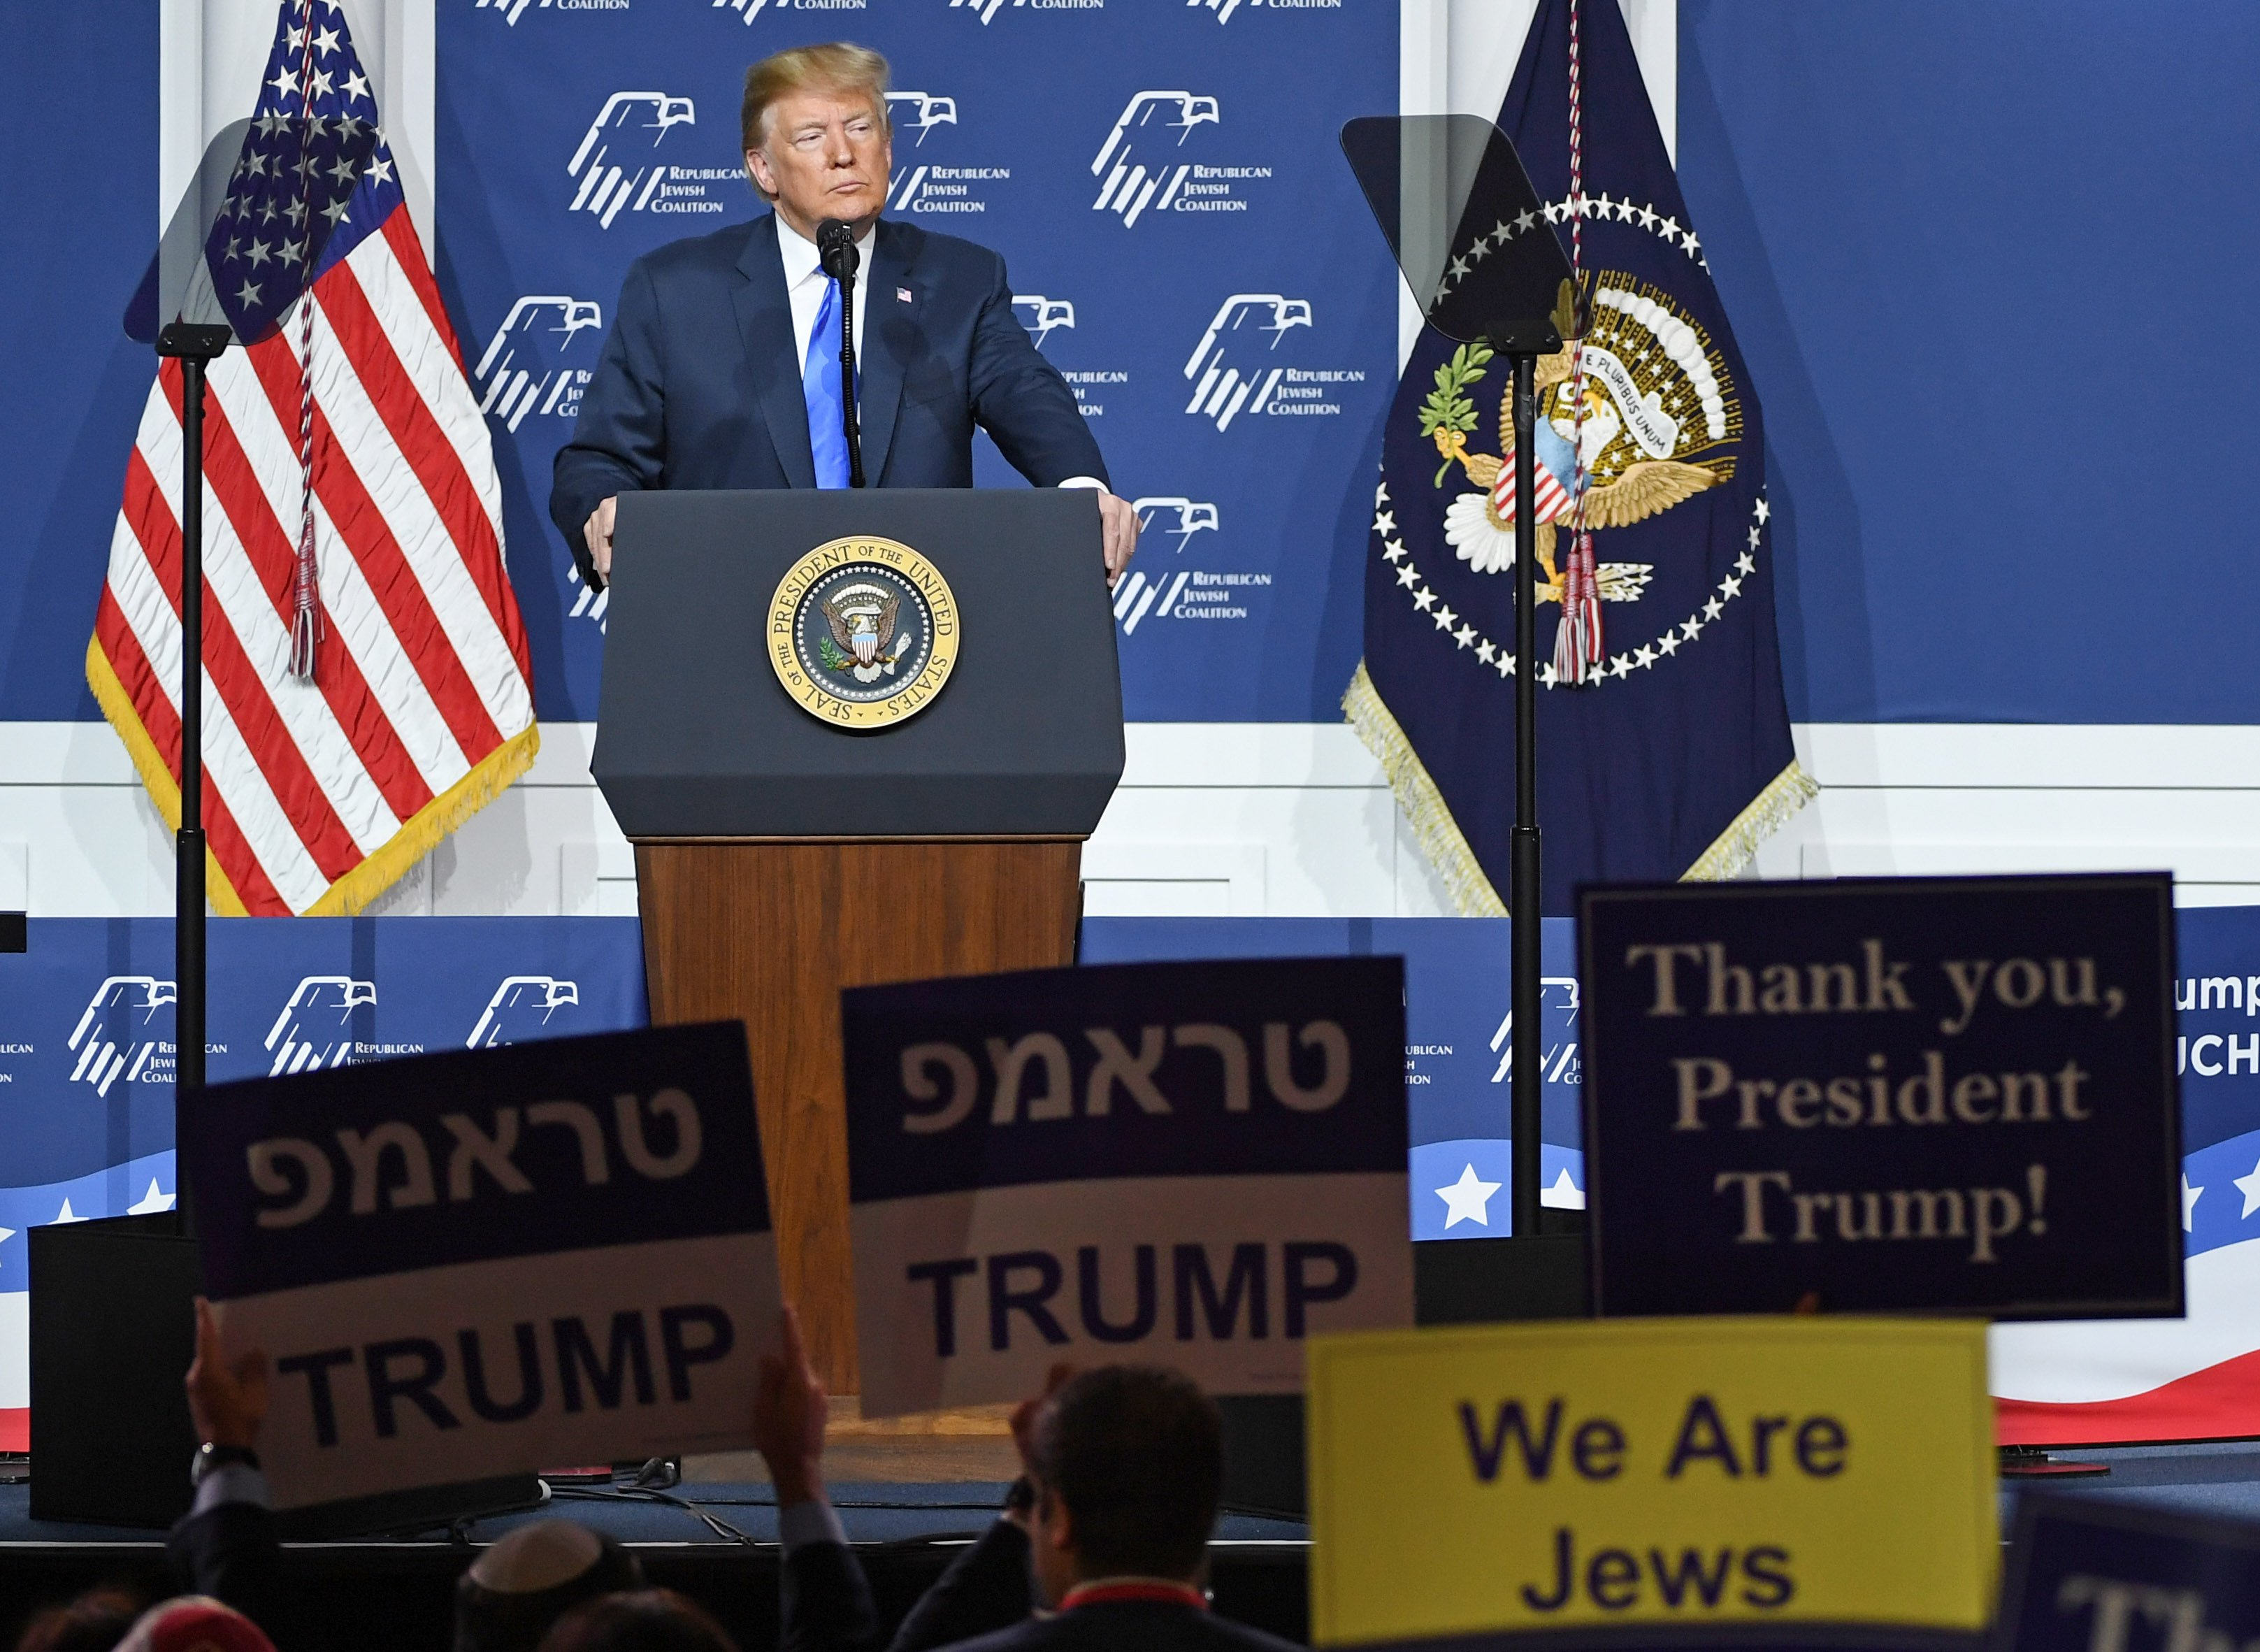 Donald Trump delivering a speech at the resident Donald Trump speaks during the Republican Jewish Coalition's annual meeting at The Venetian Las Vegas | Photo: Getty Images